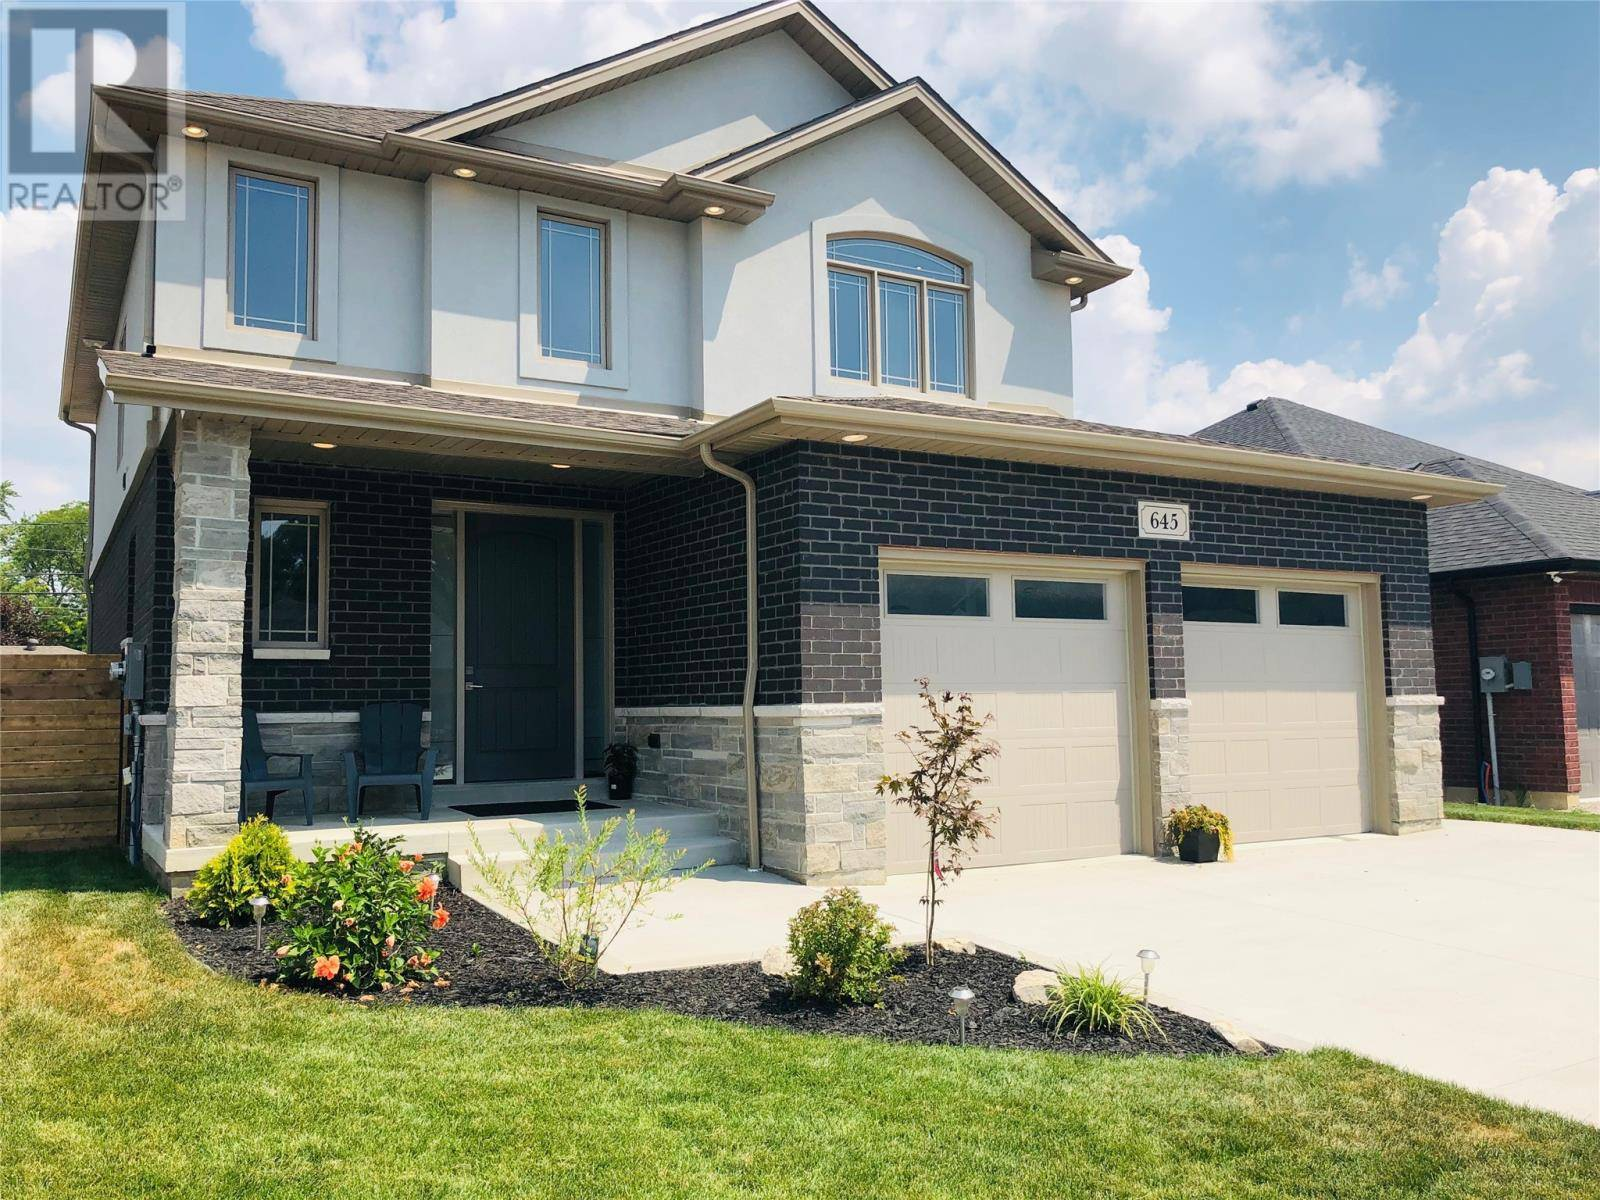 House for sale at 645 Donlon  Lasalle Ontario - MLS: 19023363